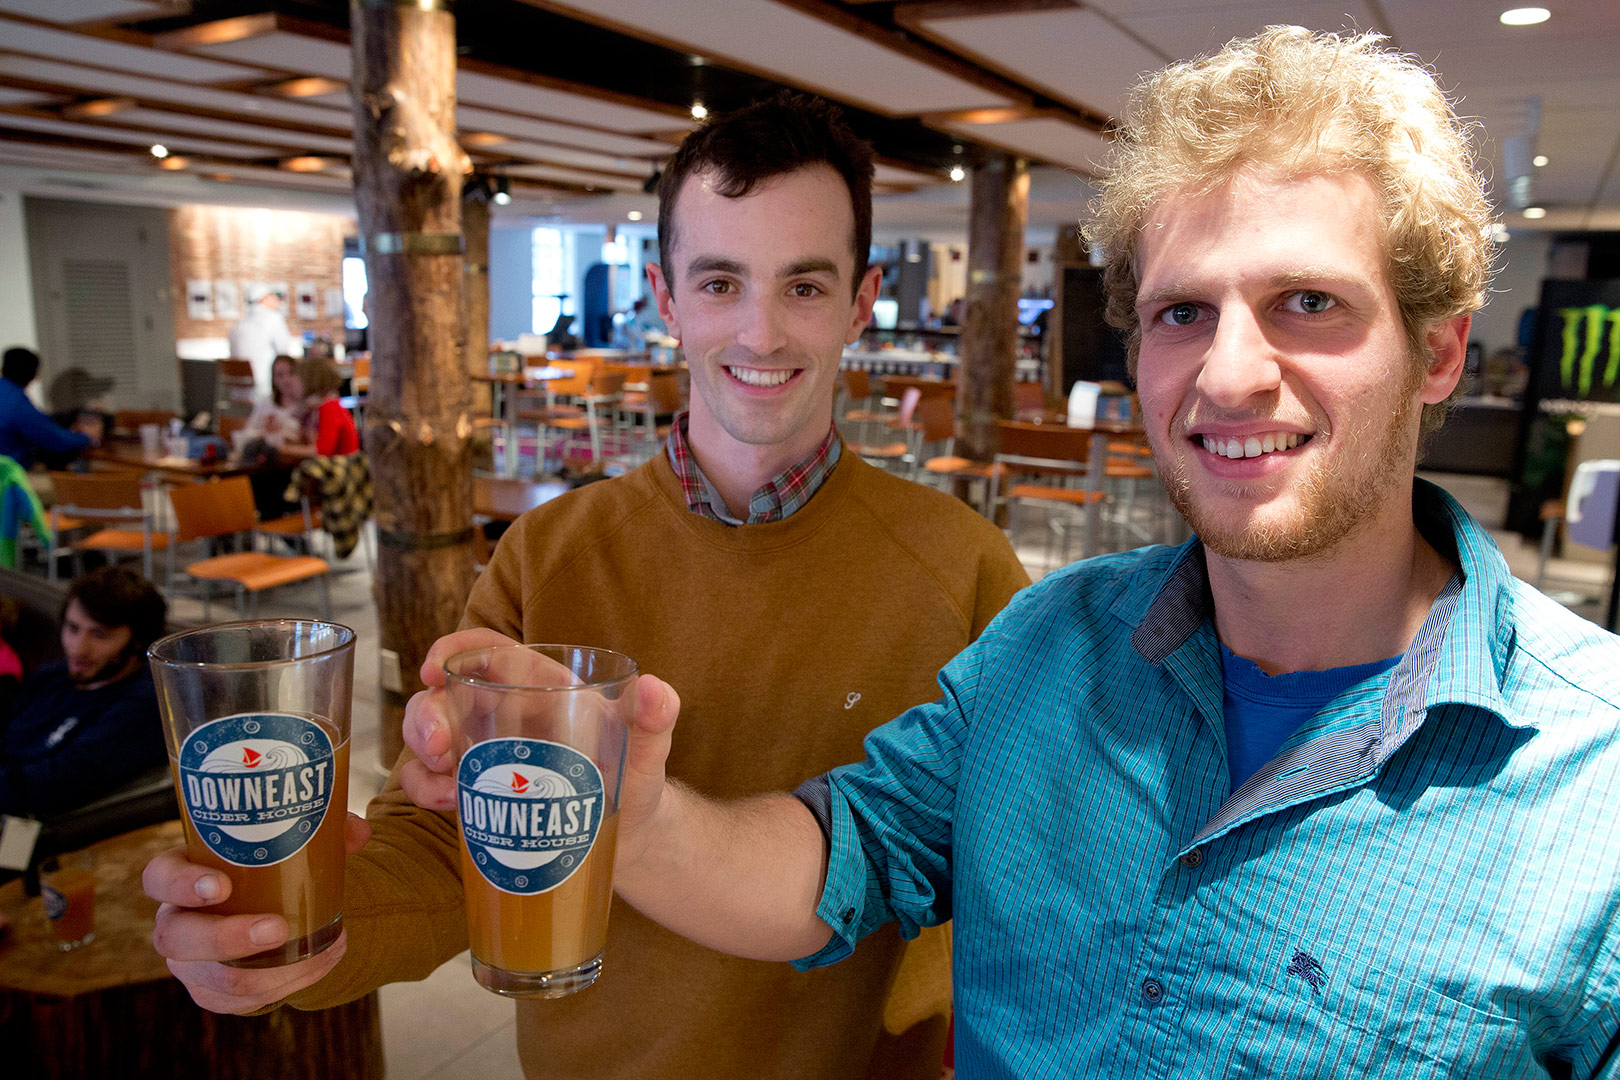 Down East Cider co-founders Tyler Mosher '11 (left) and Ross Brockman '11 held a tasting in the Bobcat Den last spring. (Phyllis Graber Jensen/Bates College)